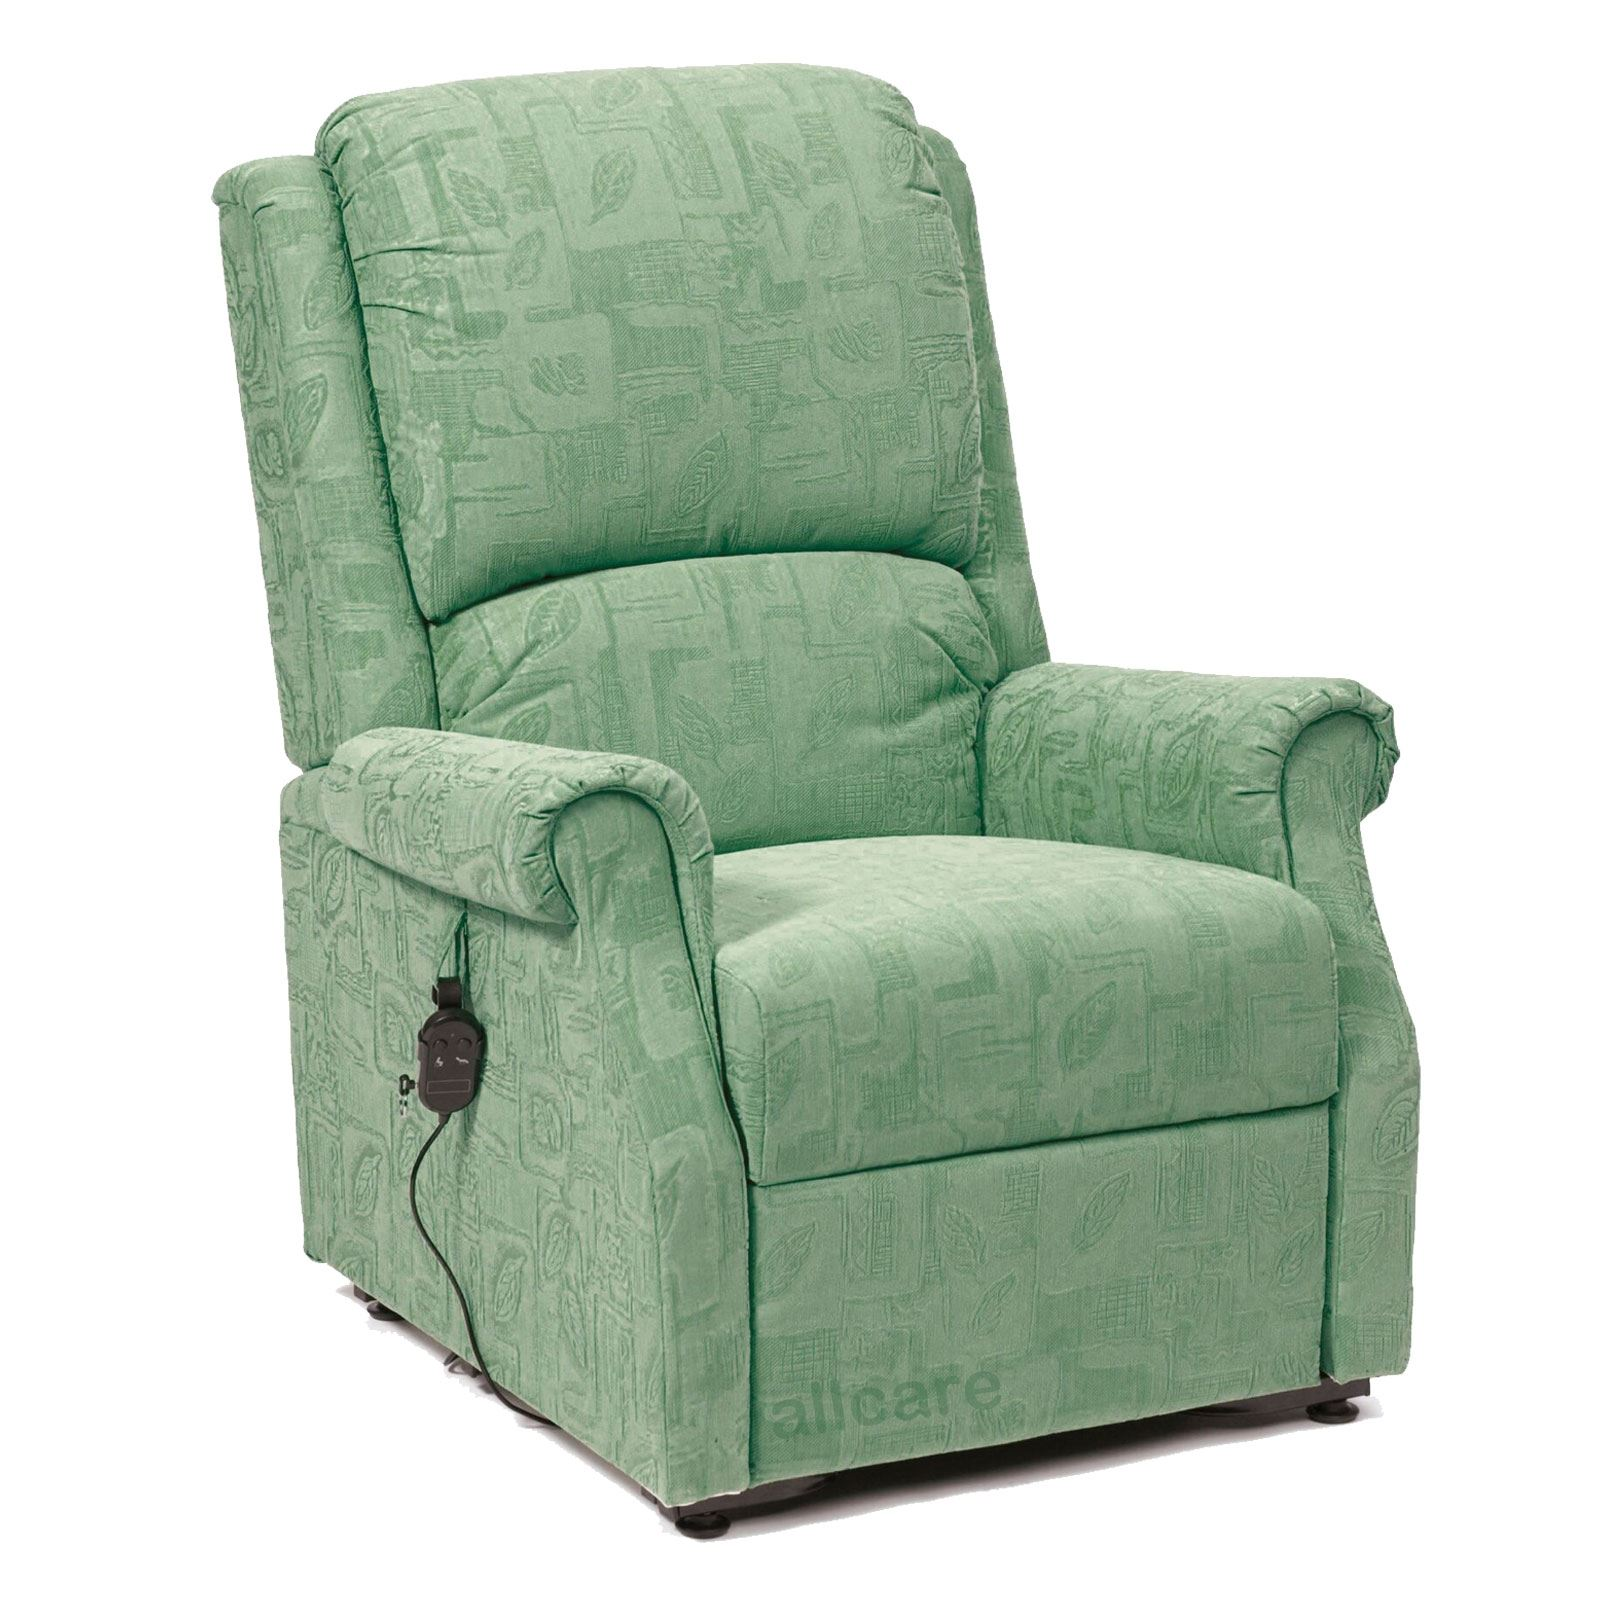 Restwell Chicago Fabric Electric Riser Recliner Chair Single Motor ...